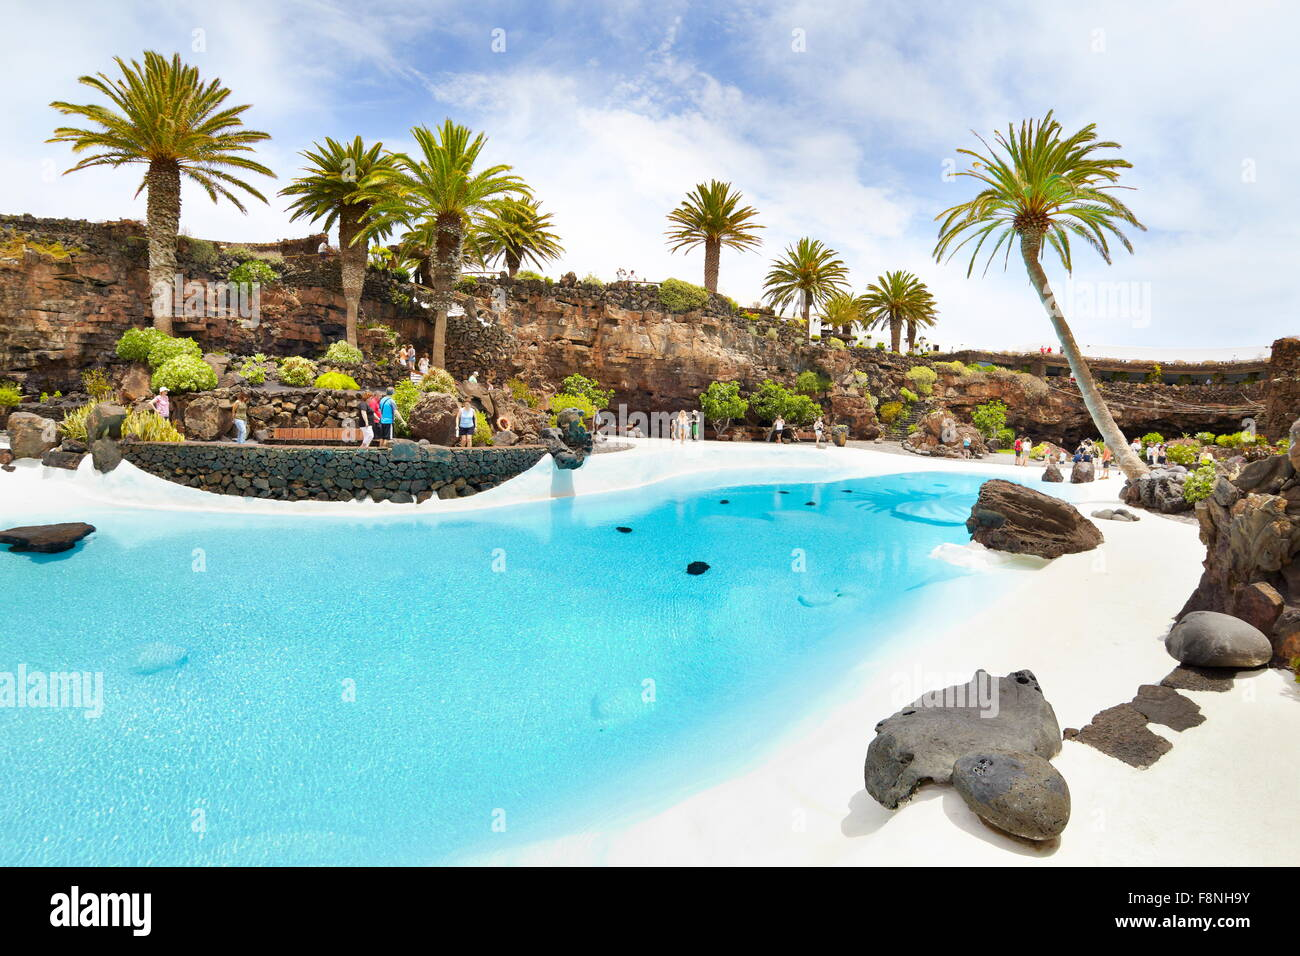 Lanzarote, blue pool in Jameos del Aqua, Spain, Canary Islands - Stock Image